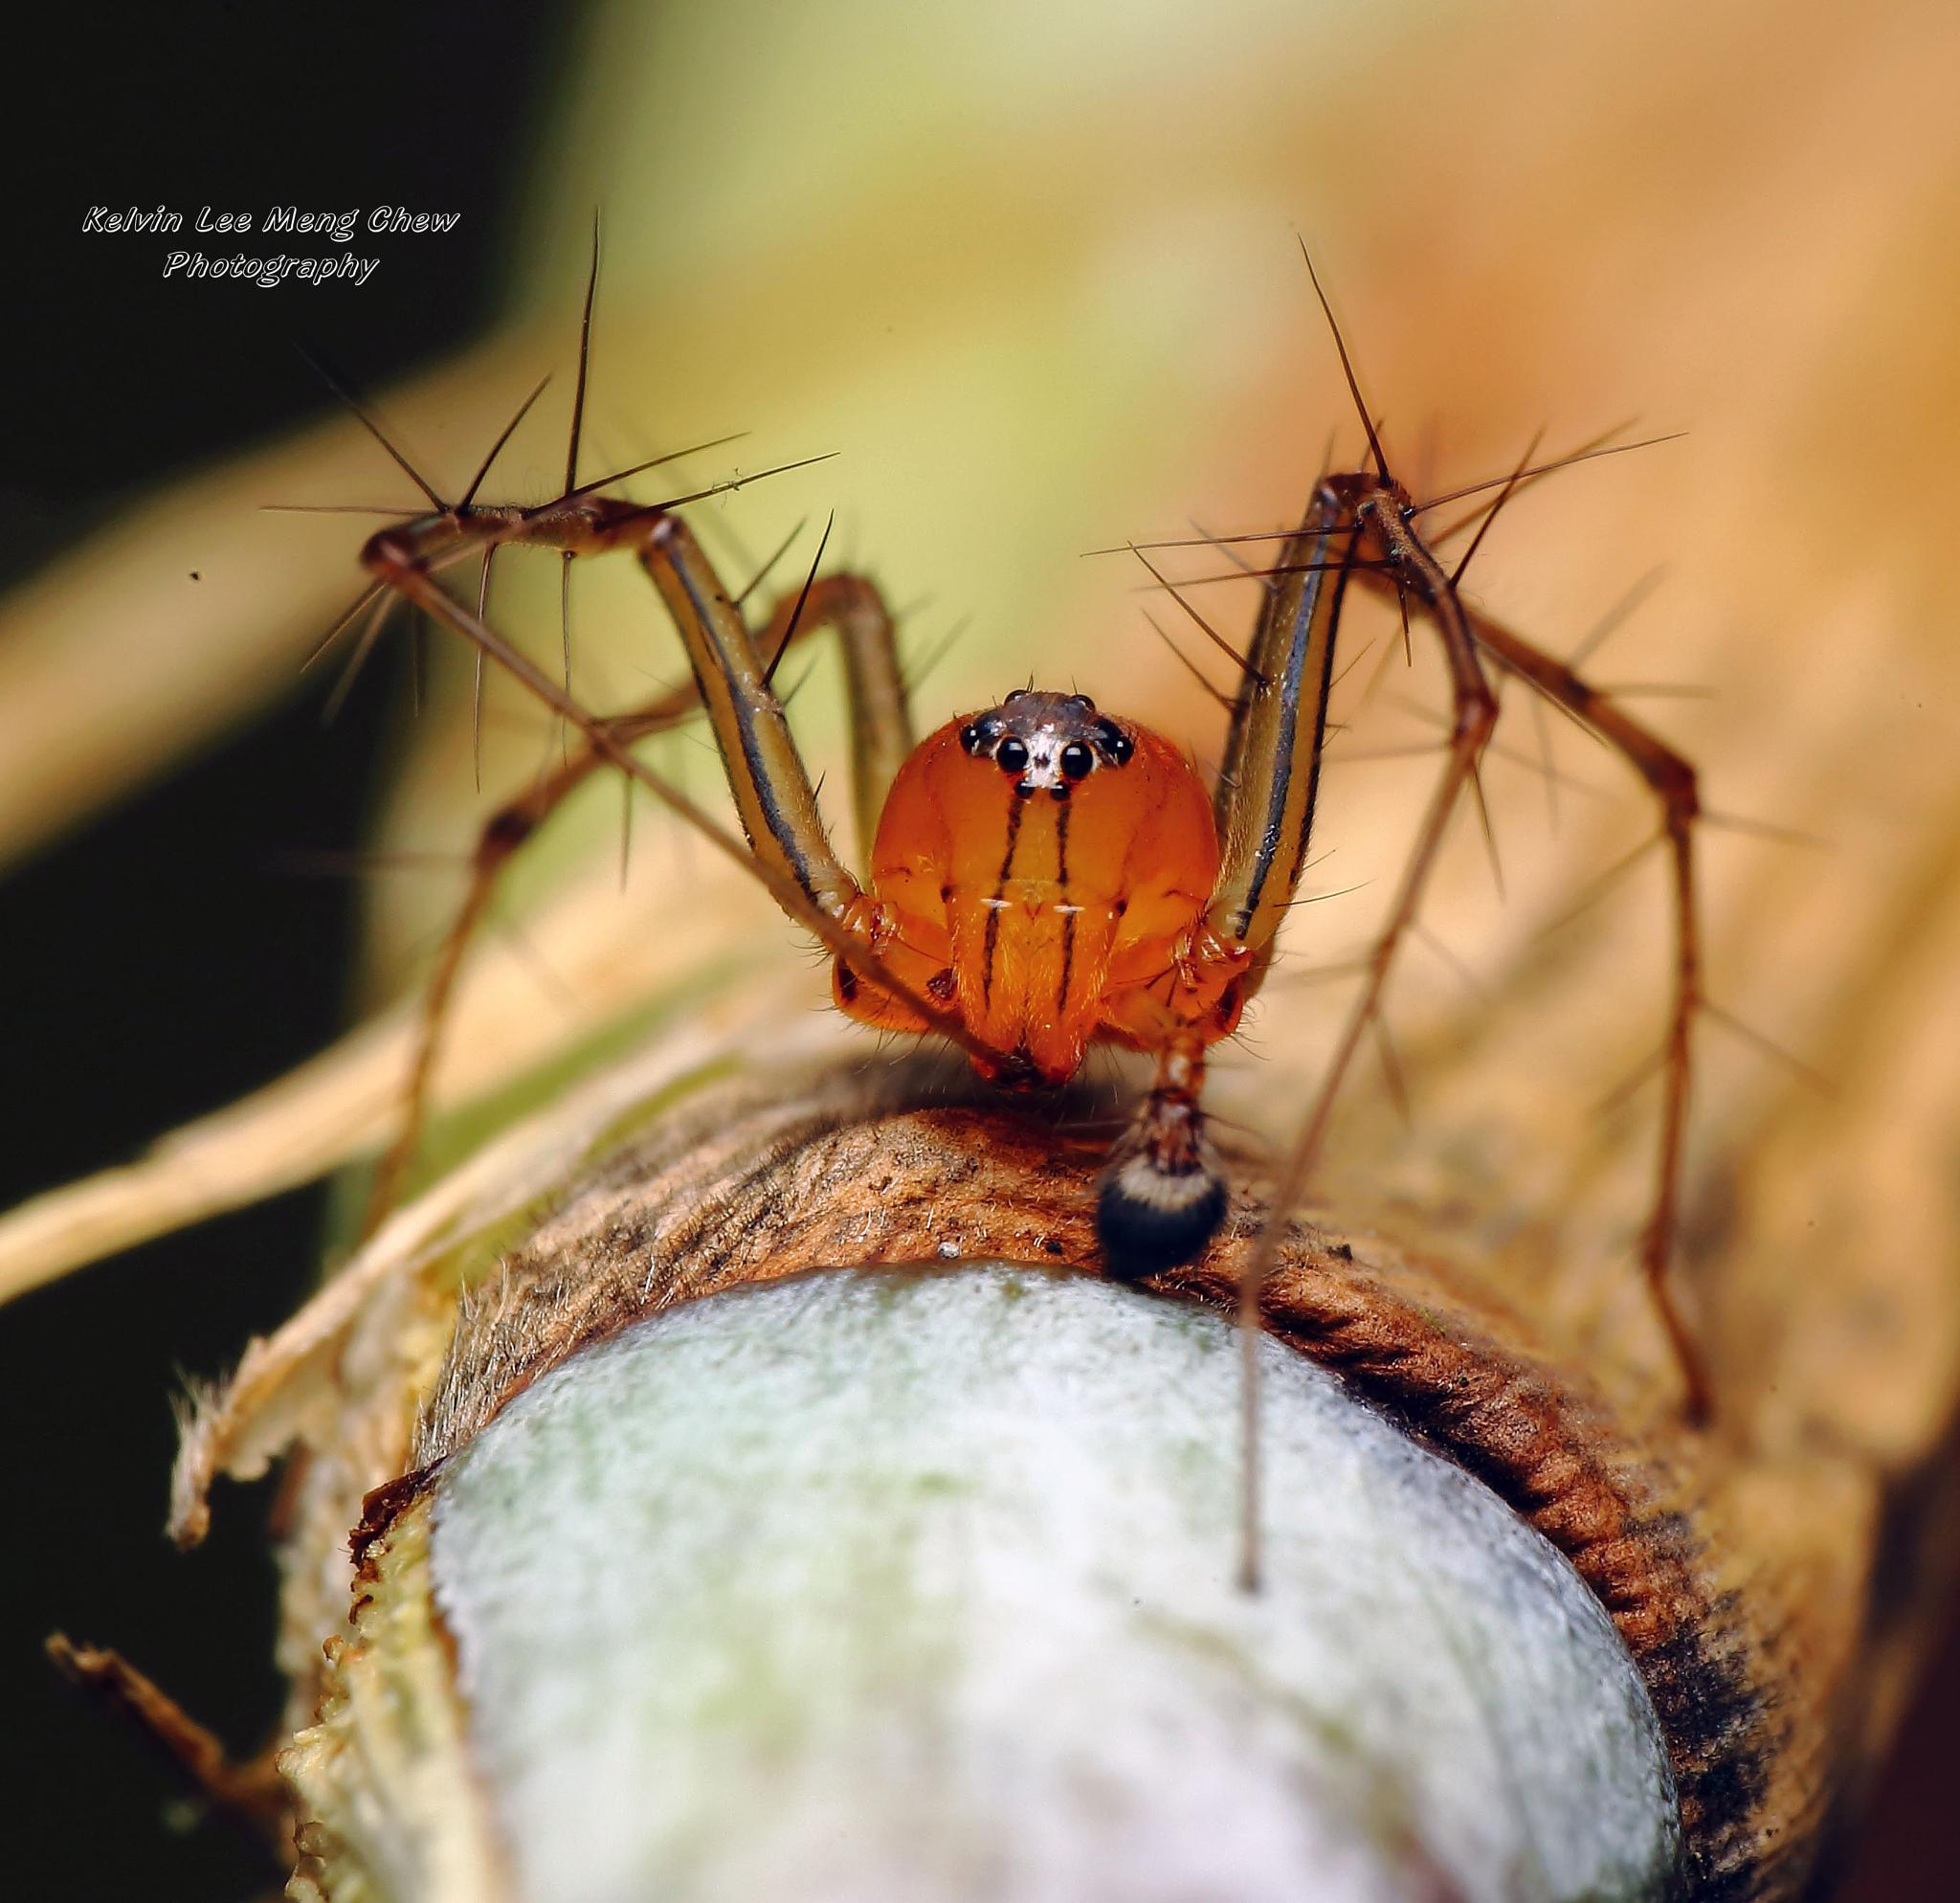 Lynx Spider by Kelvin Lee